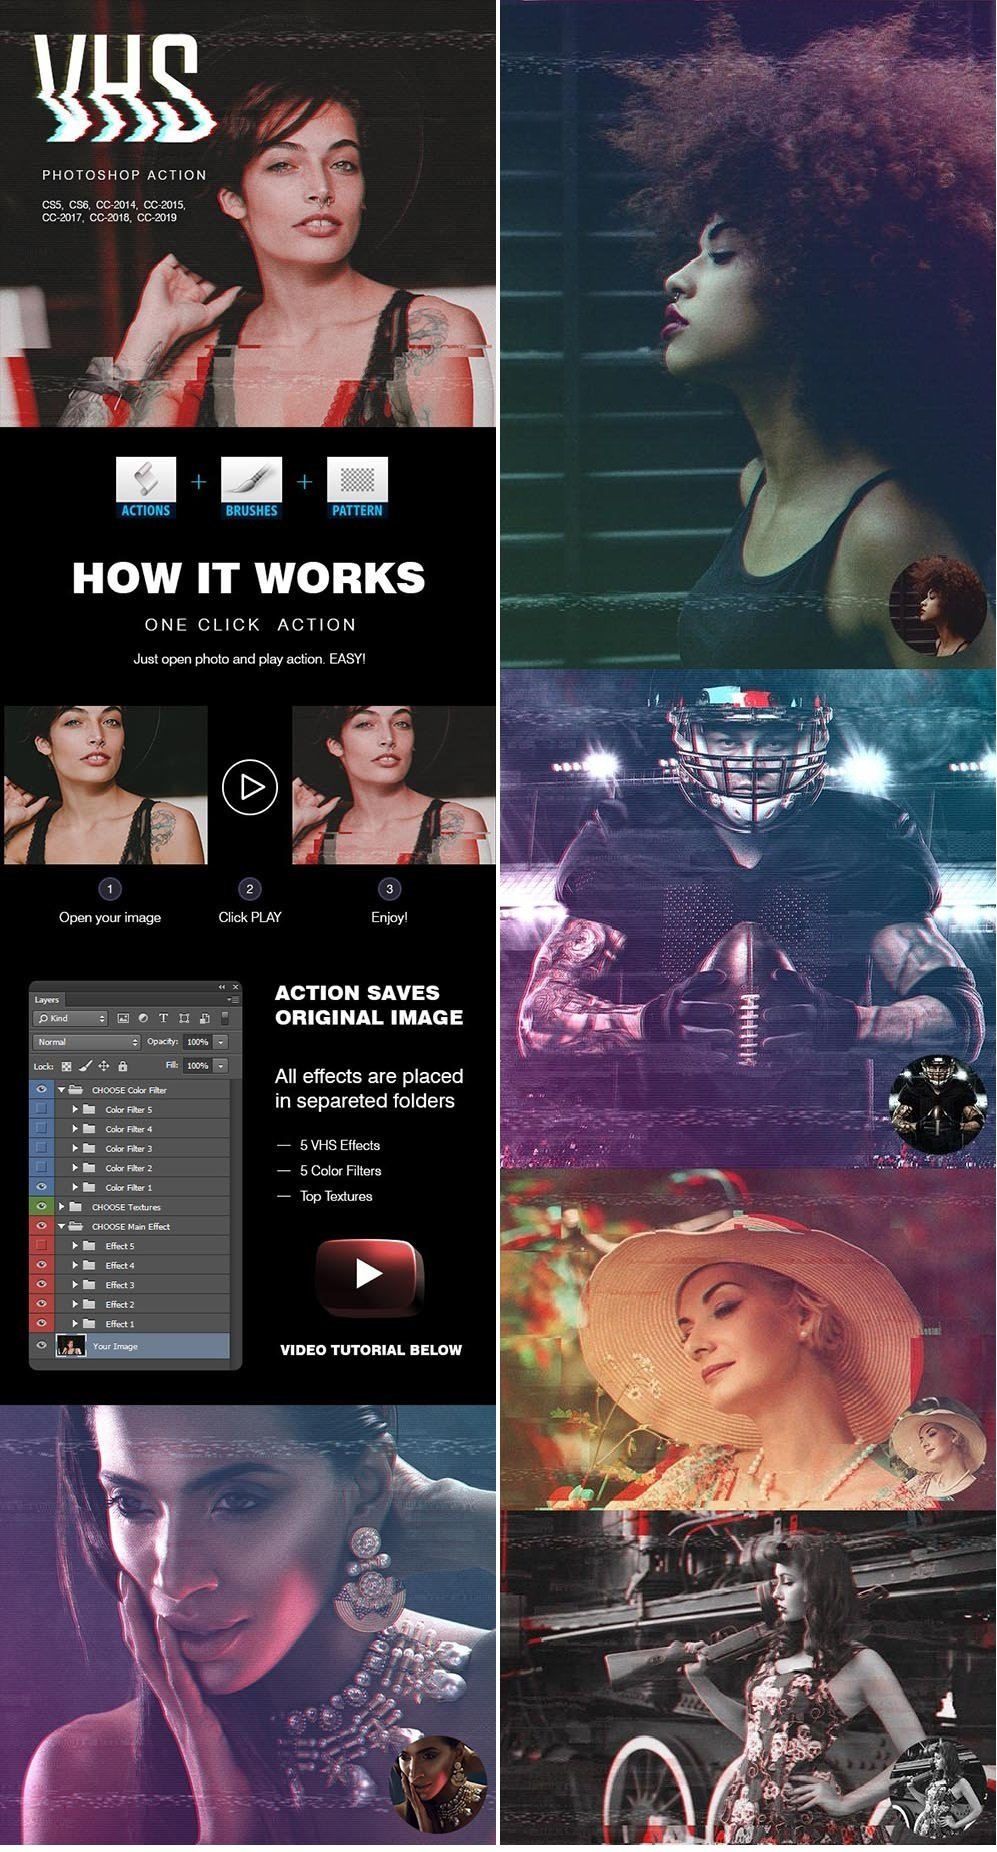 Download VHS Photoshop Action 23348871 - SoftArchive